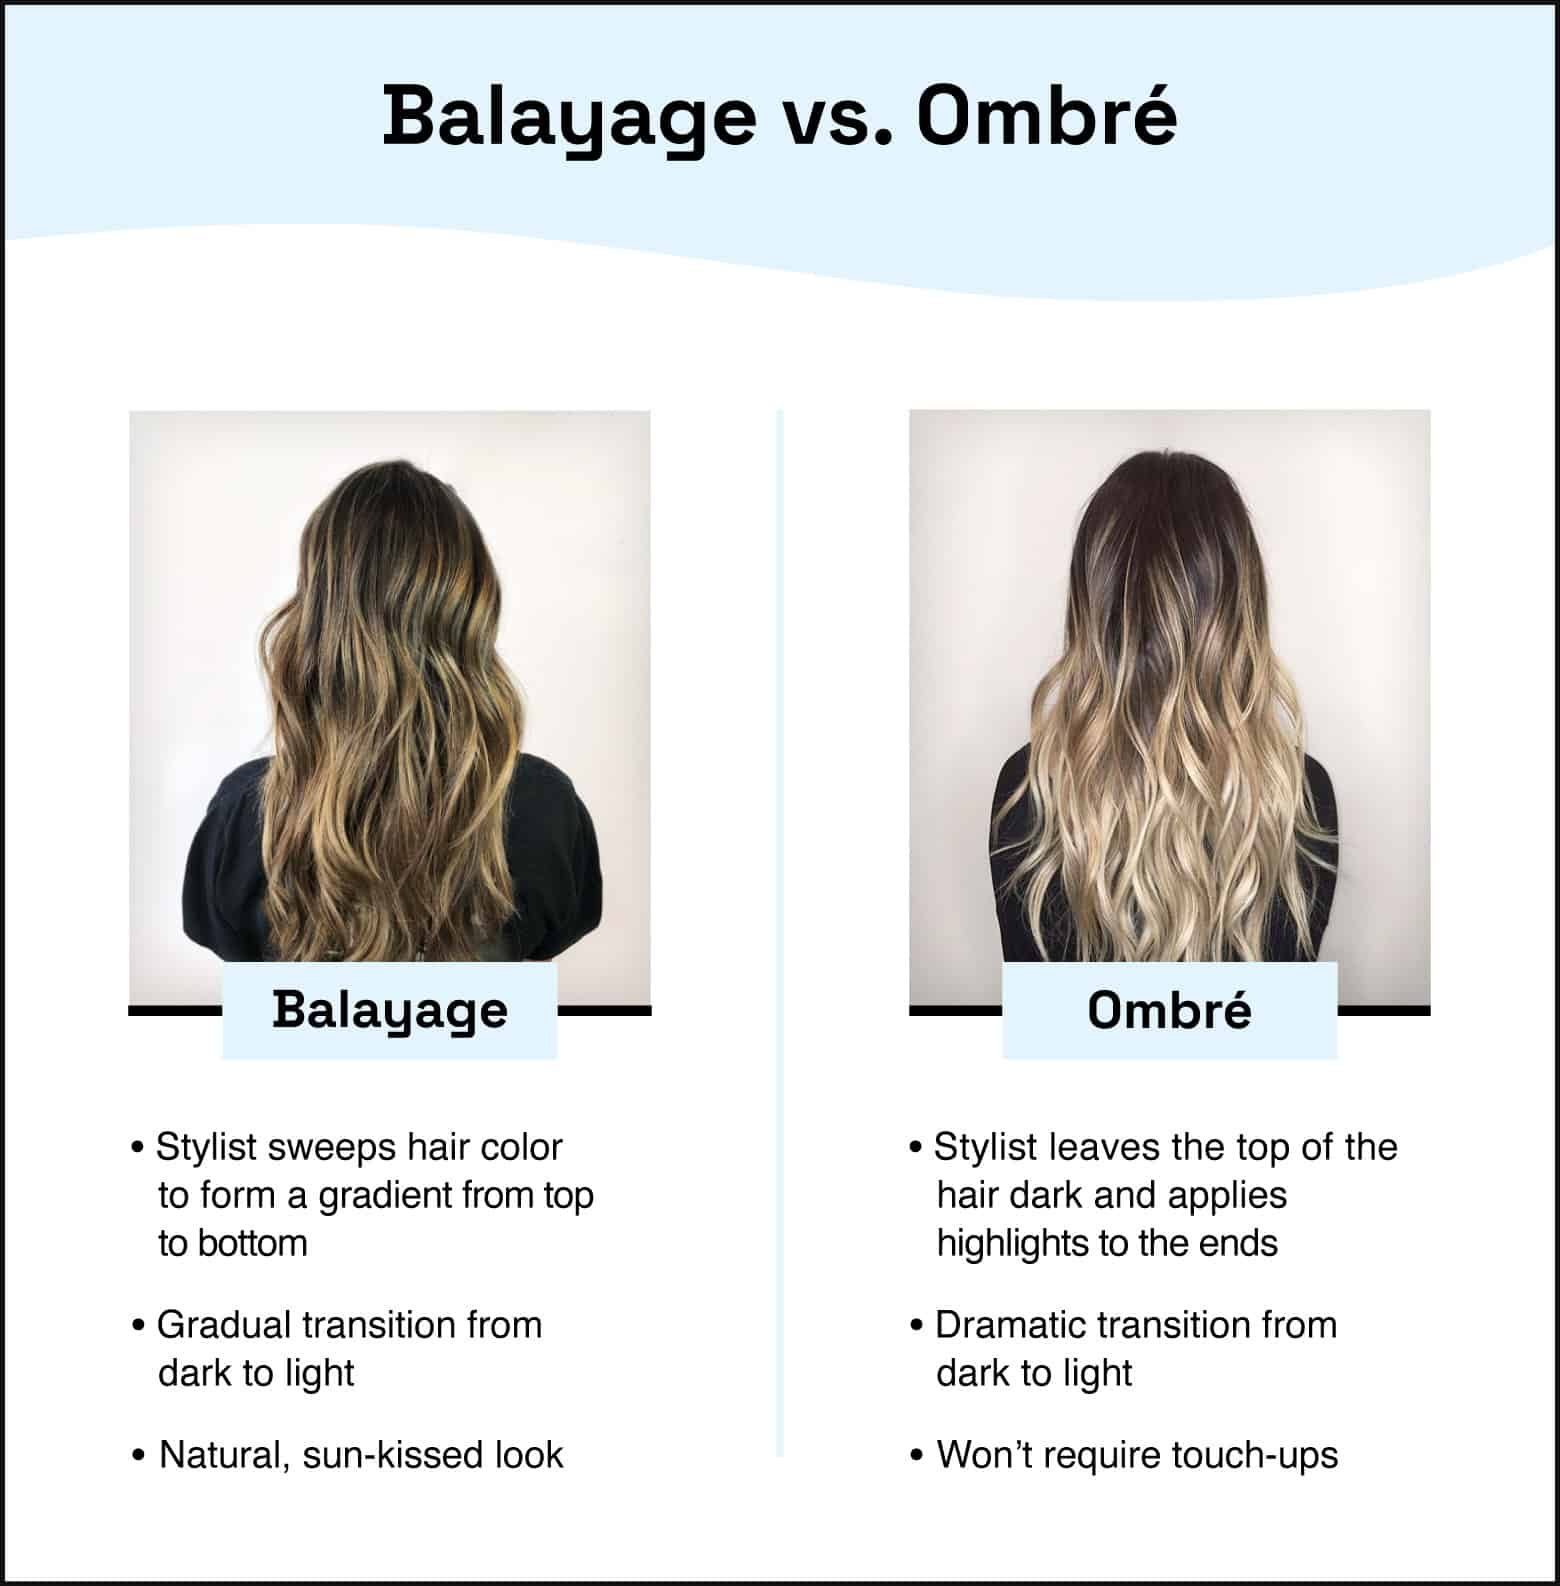 comparing and contrasting balayage and ombre